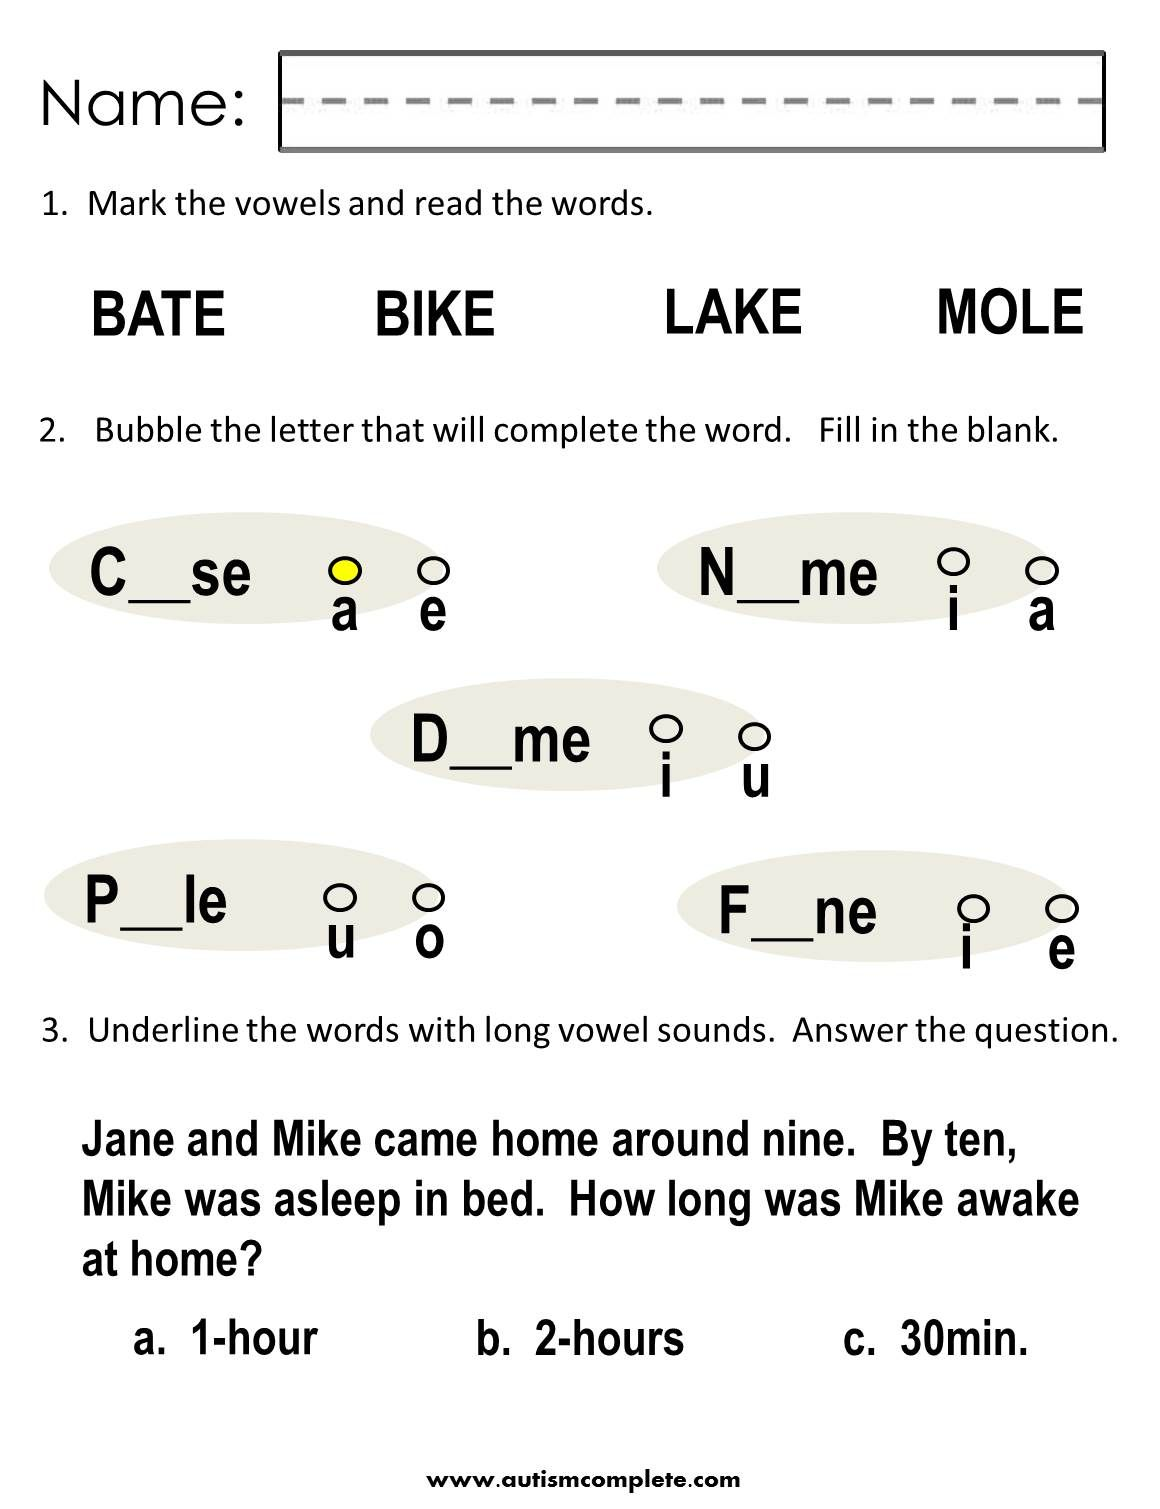 Teach Long Vowel Sounds With These Great Worksheets